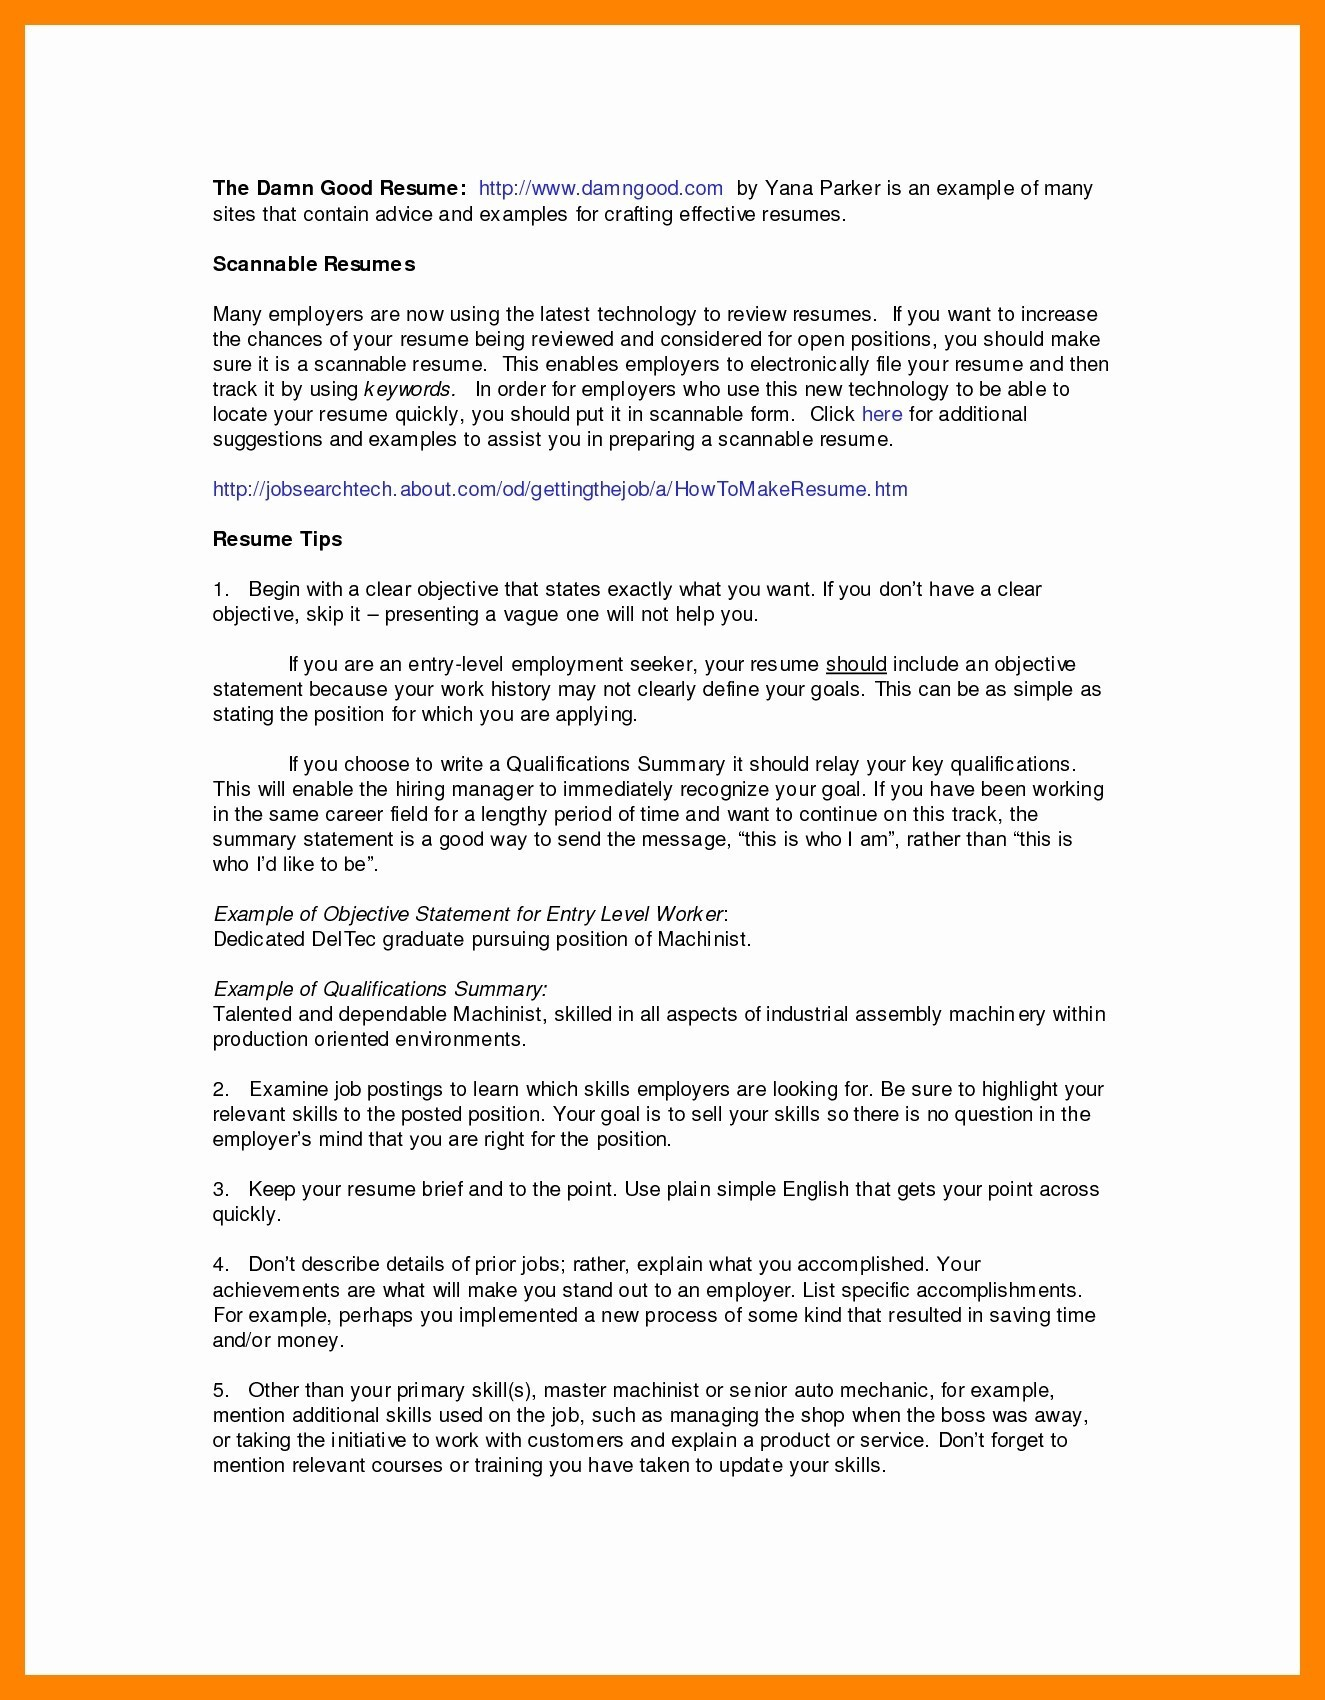 Resume Objective for Career Change - Career Change Resume Objective Statement Examples Beautiful